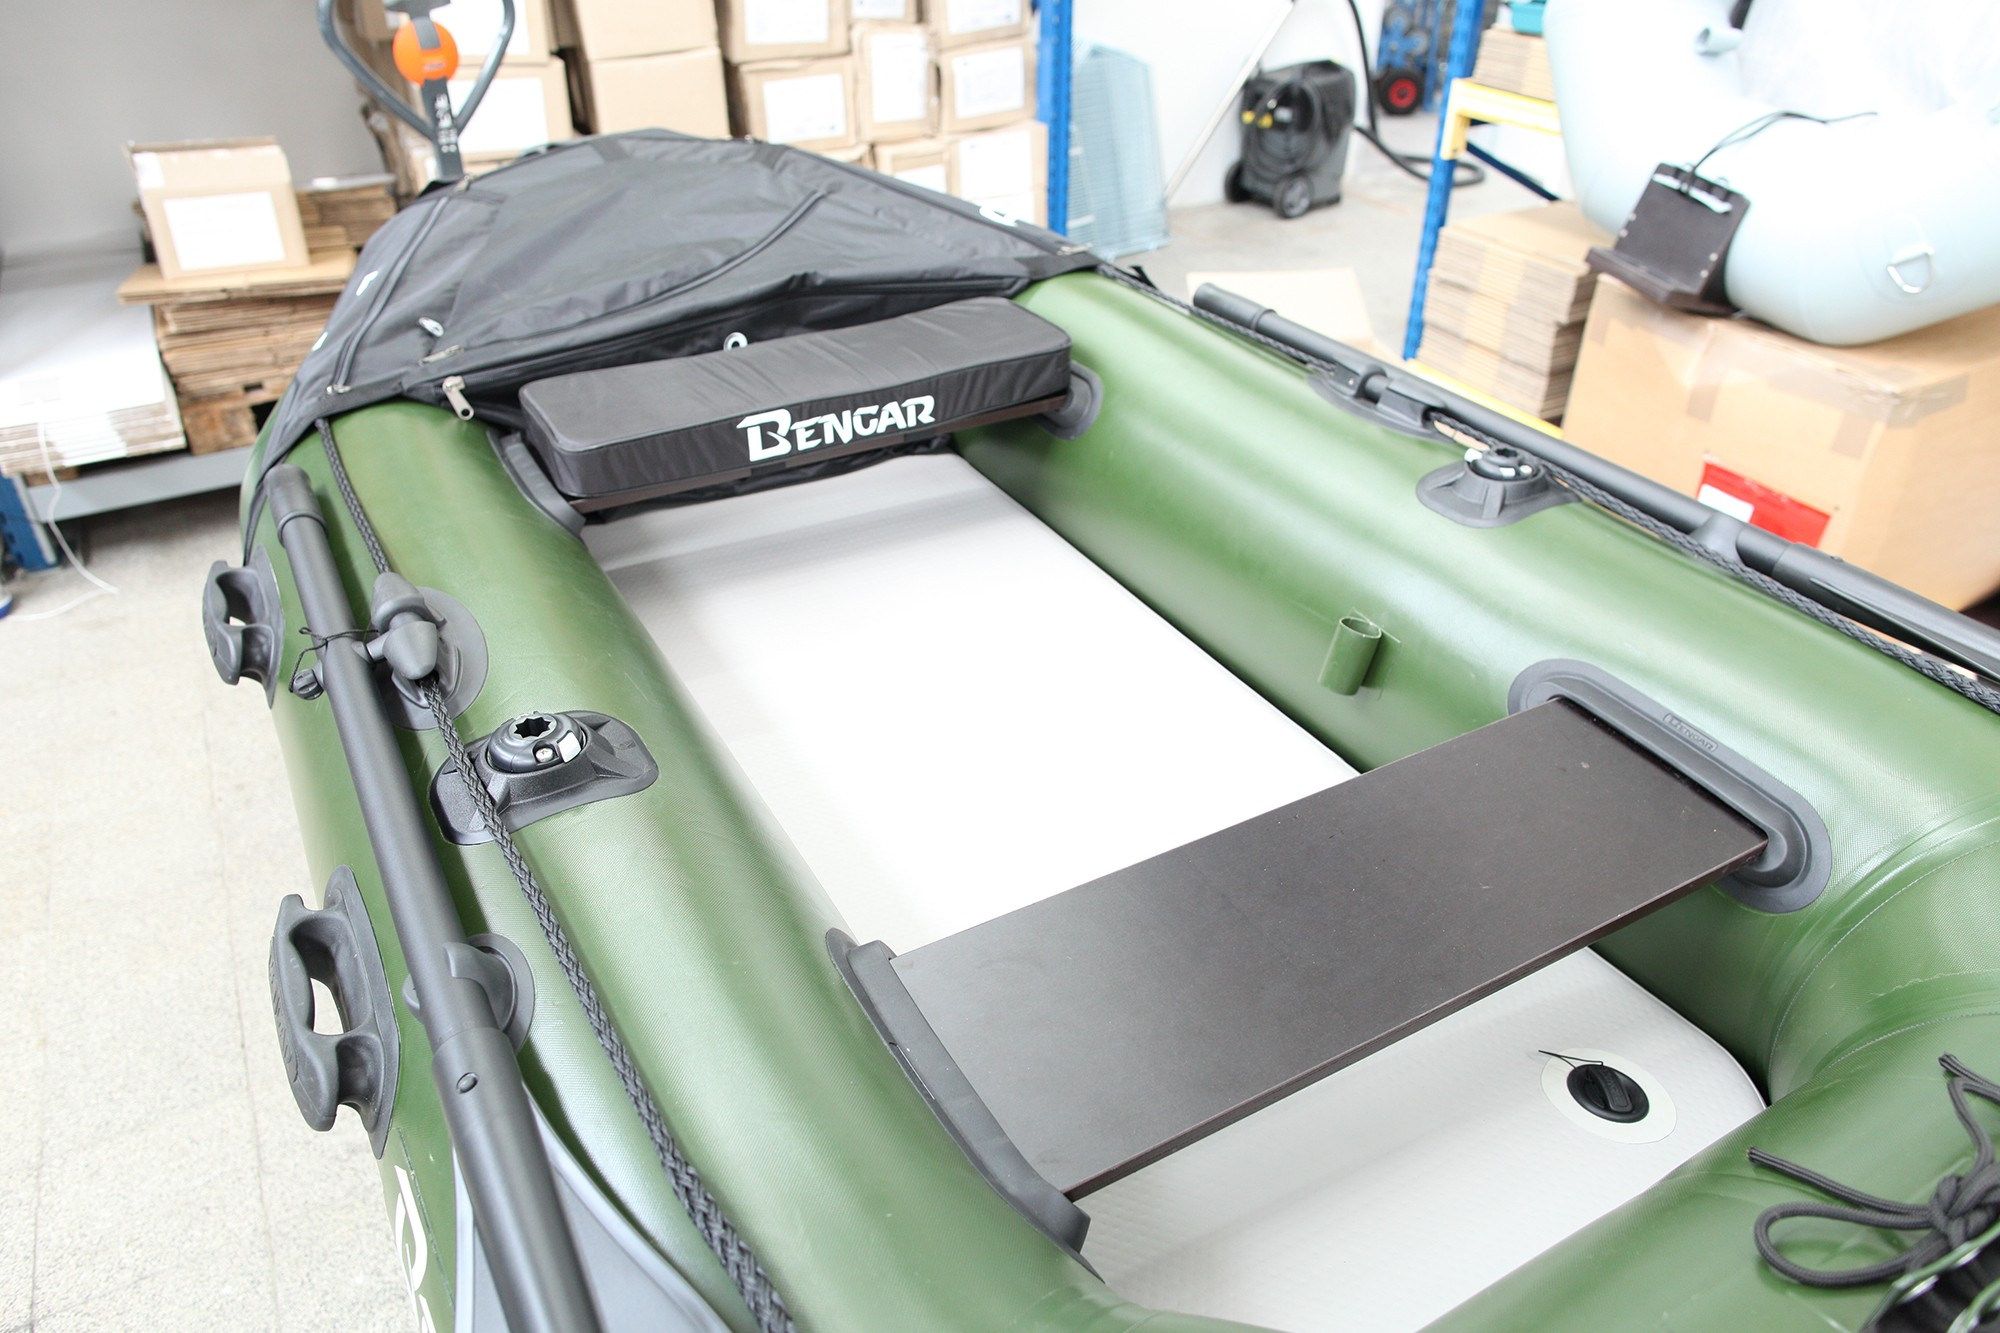 High Pressure Air Deck - floor for dinghy and inflatable